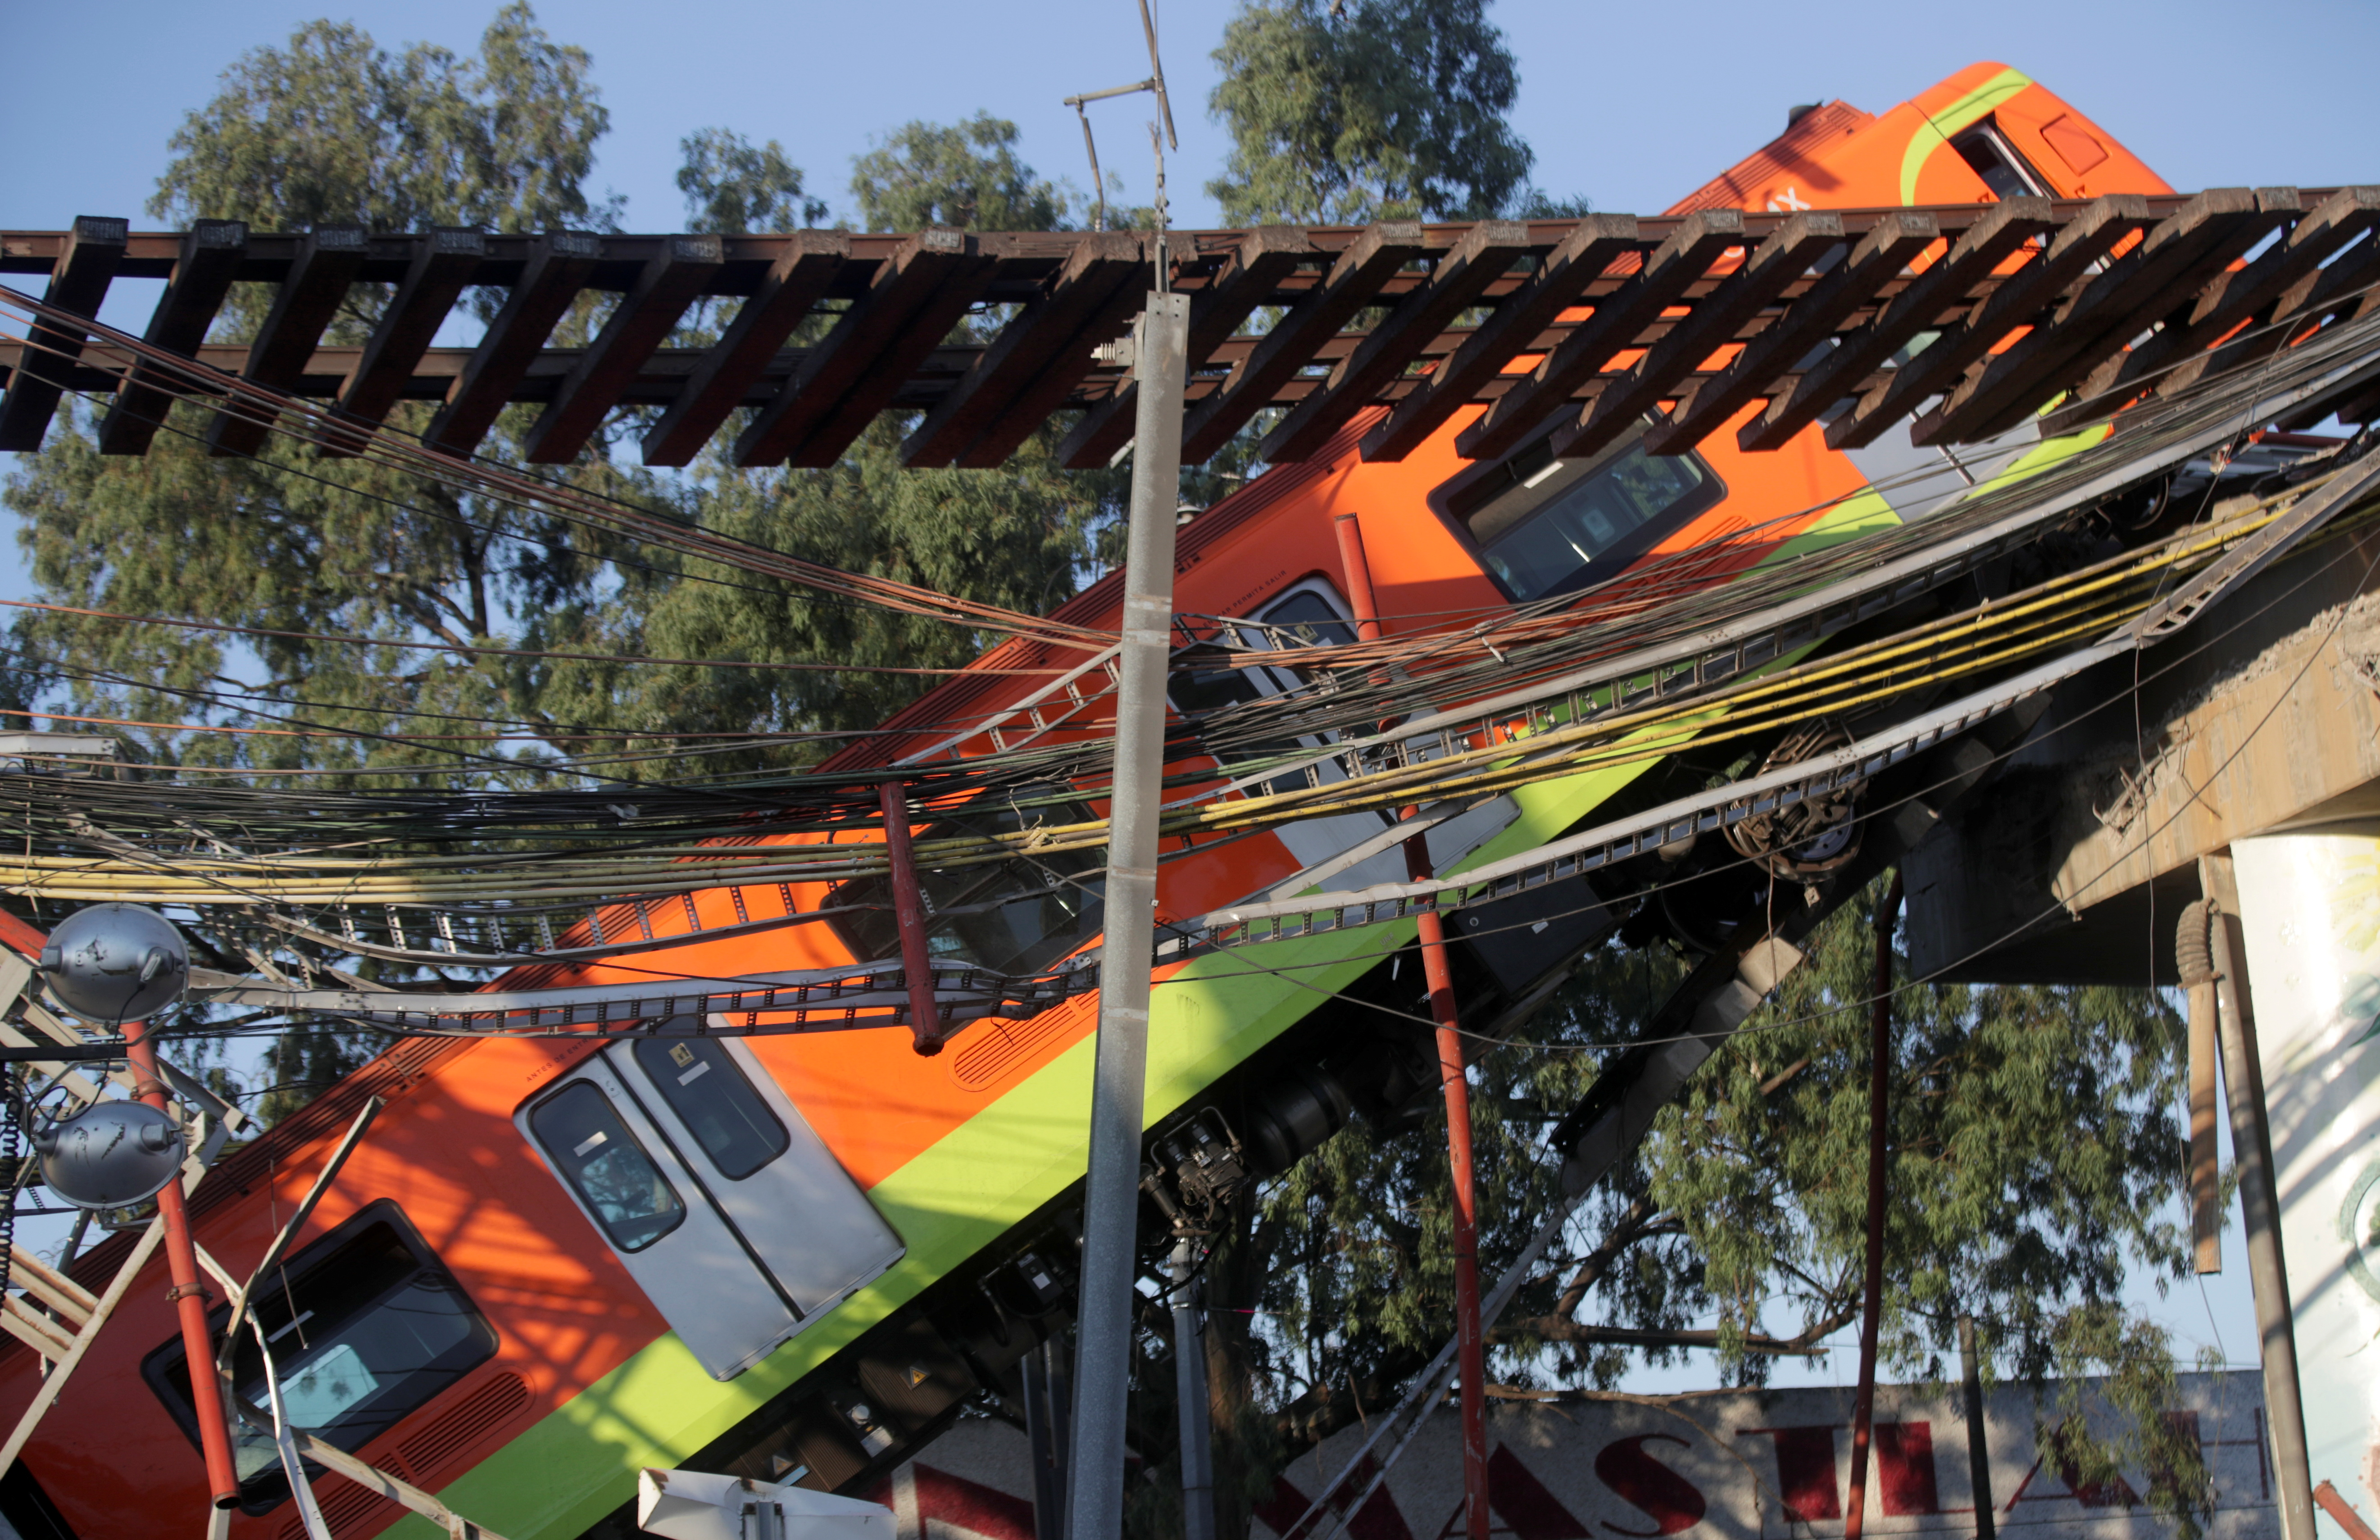 The site where an overpass for a metro partially collapsed with train cars on it is seen at Olivos station in Mexico City, Mexico, May 4, 2021. REUTERS/Henry Romero